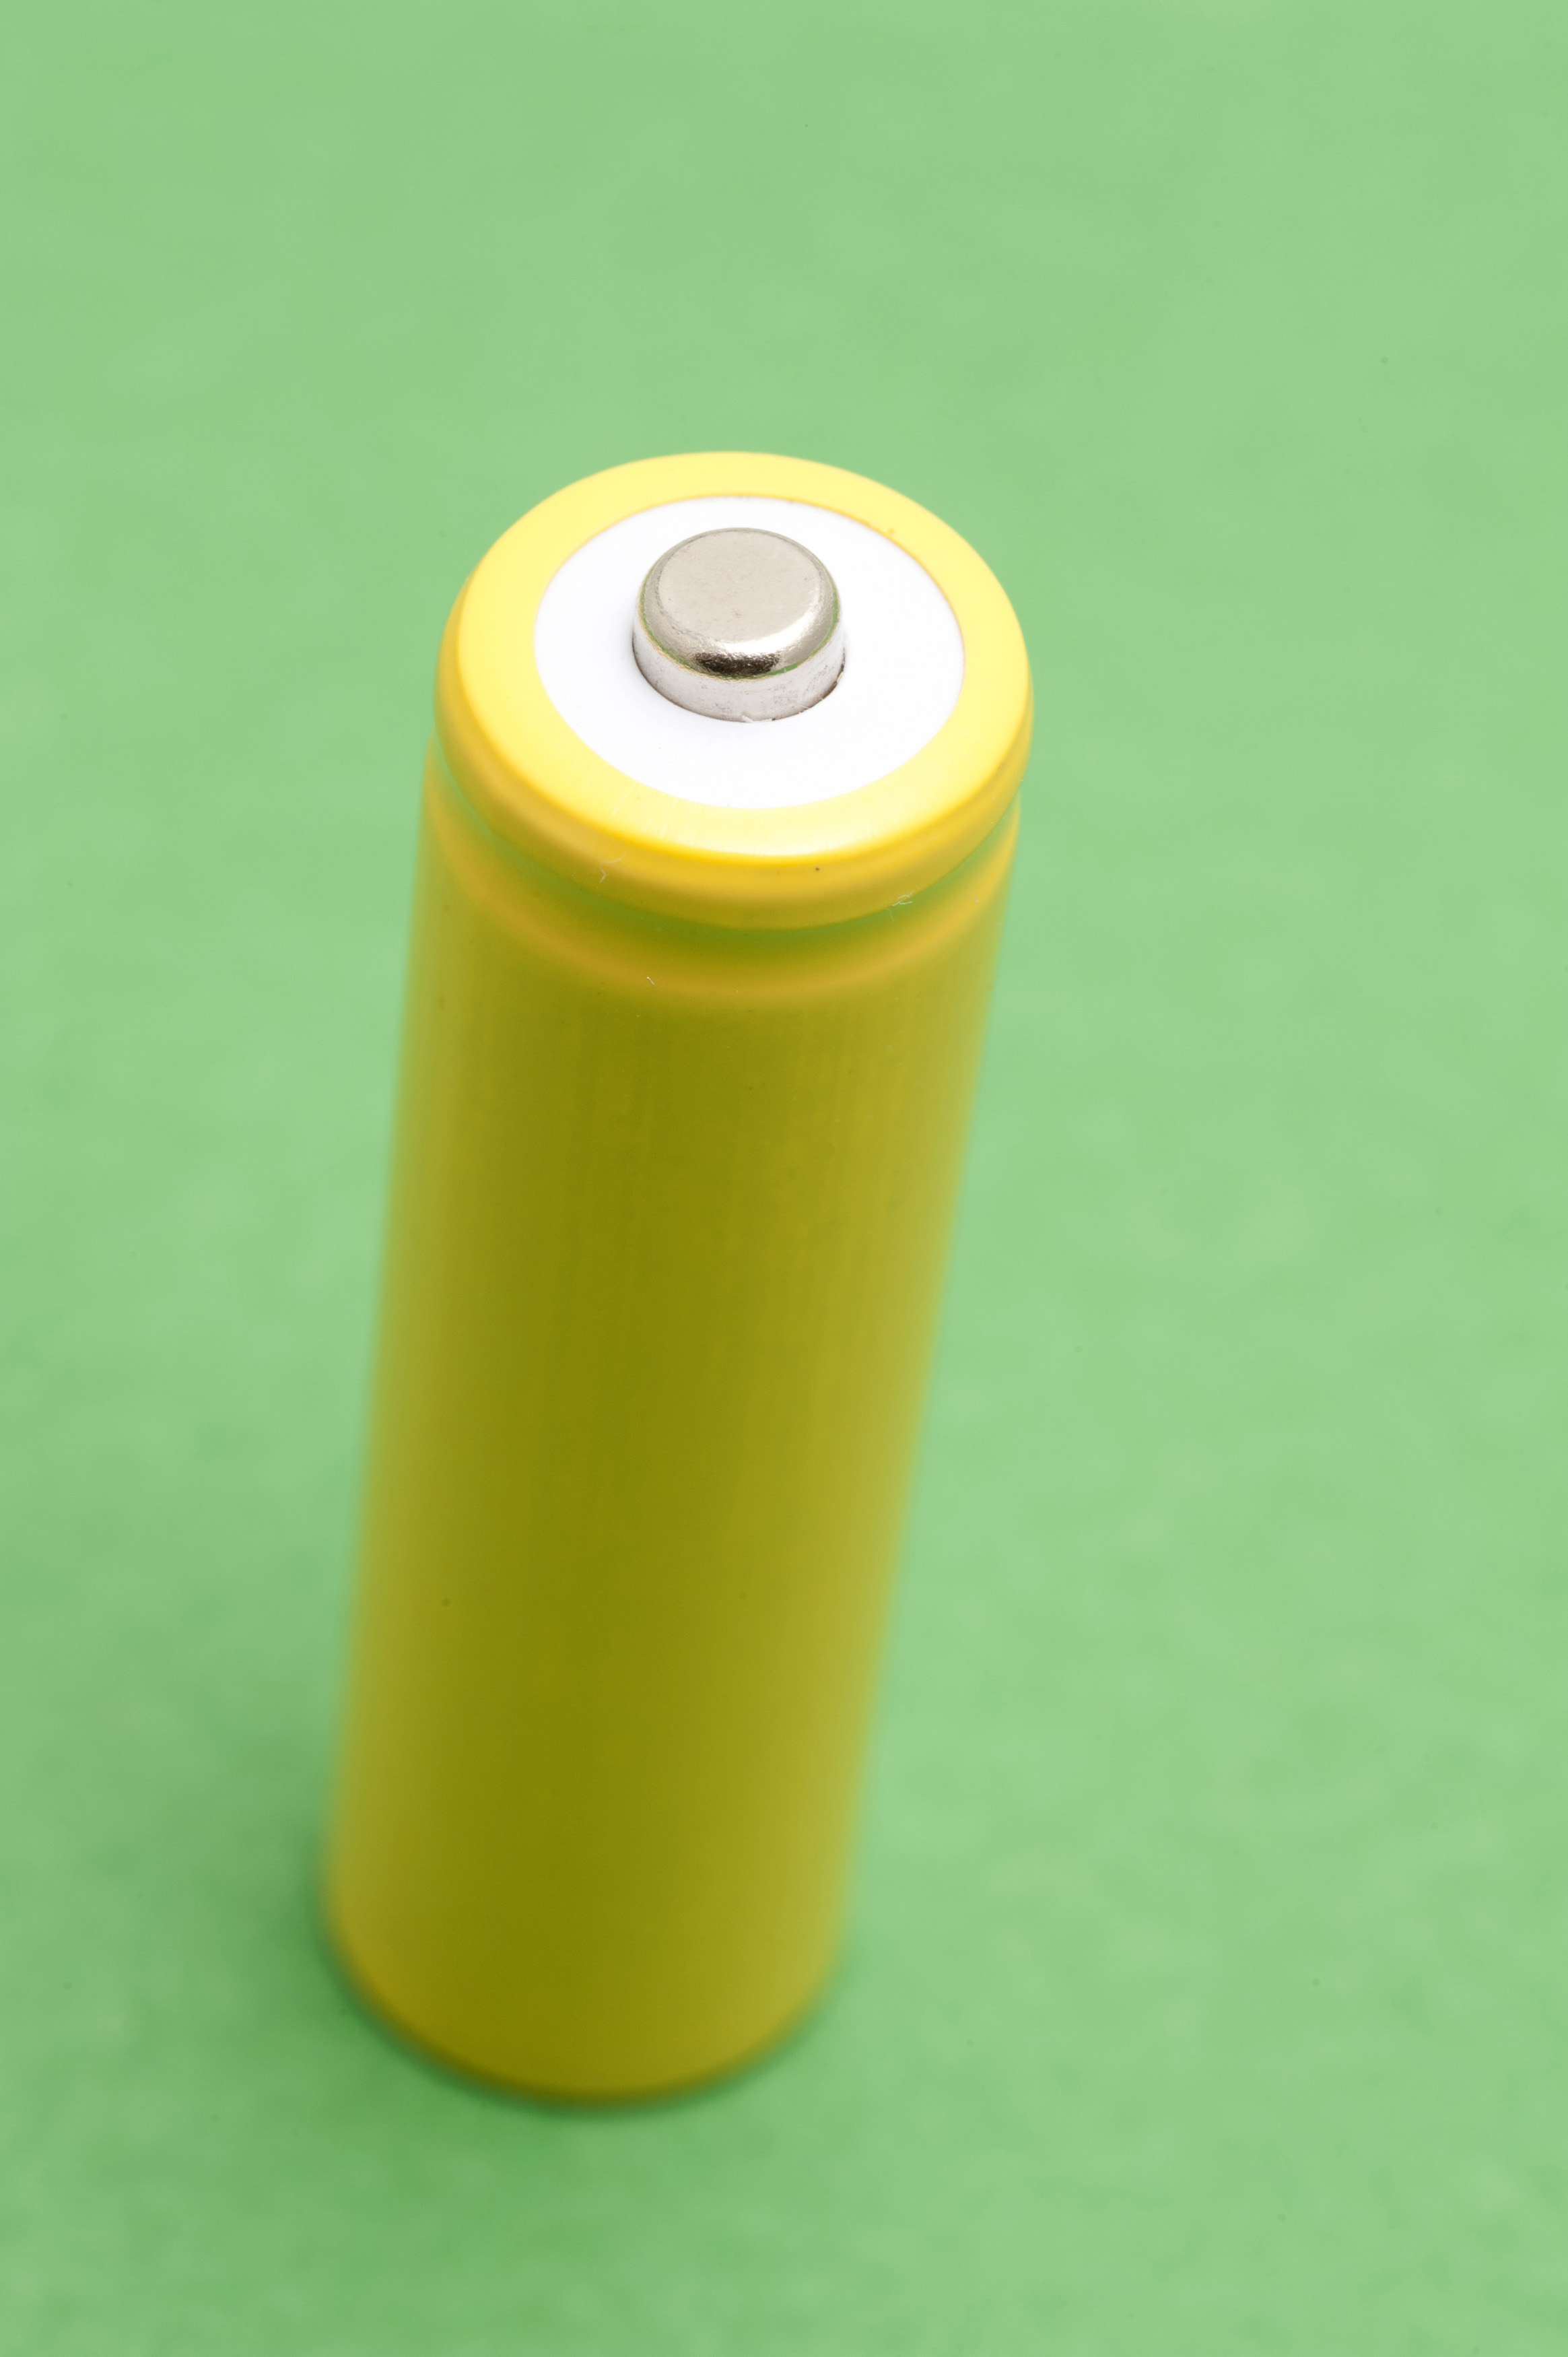 view of the positive terminal on a single unlabeled yellow battery cell on a green background